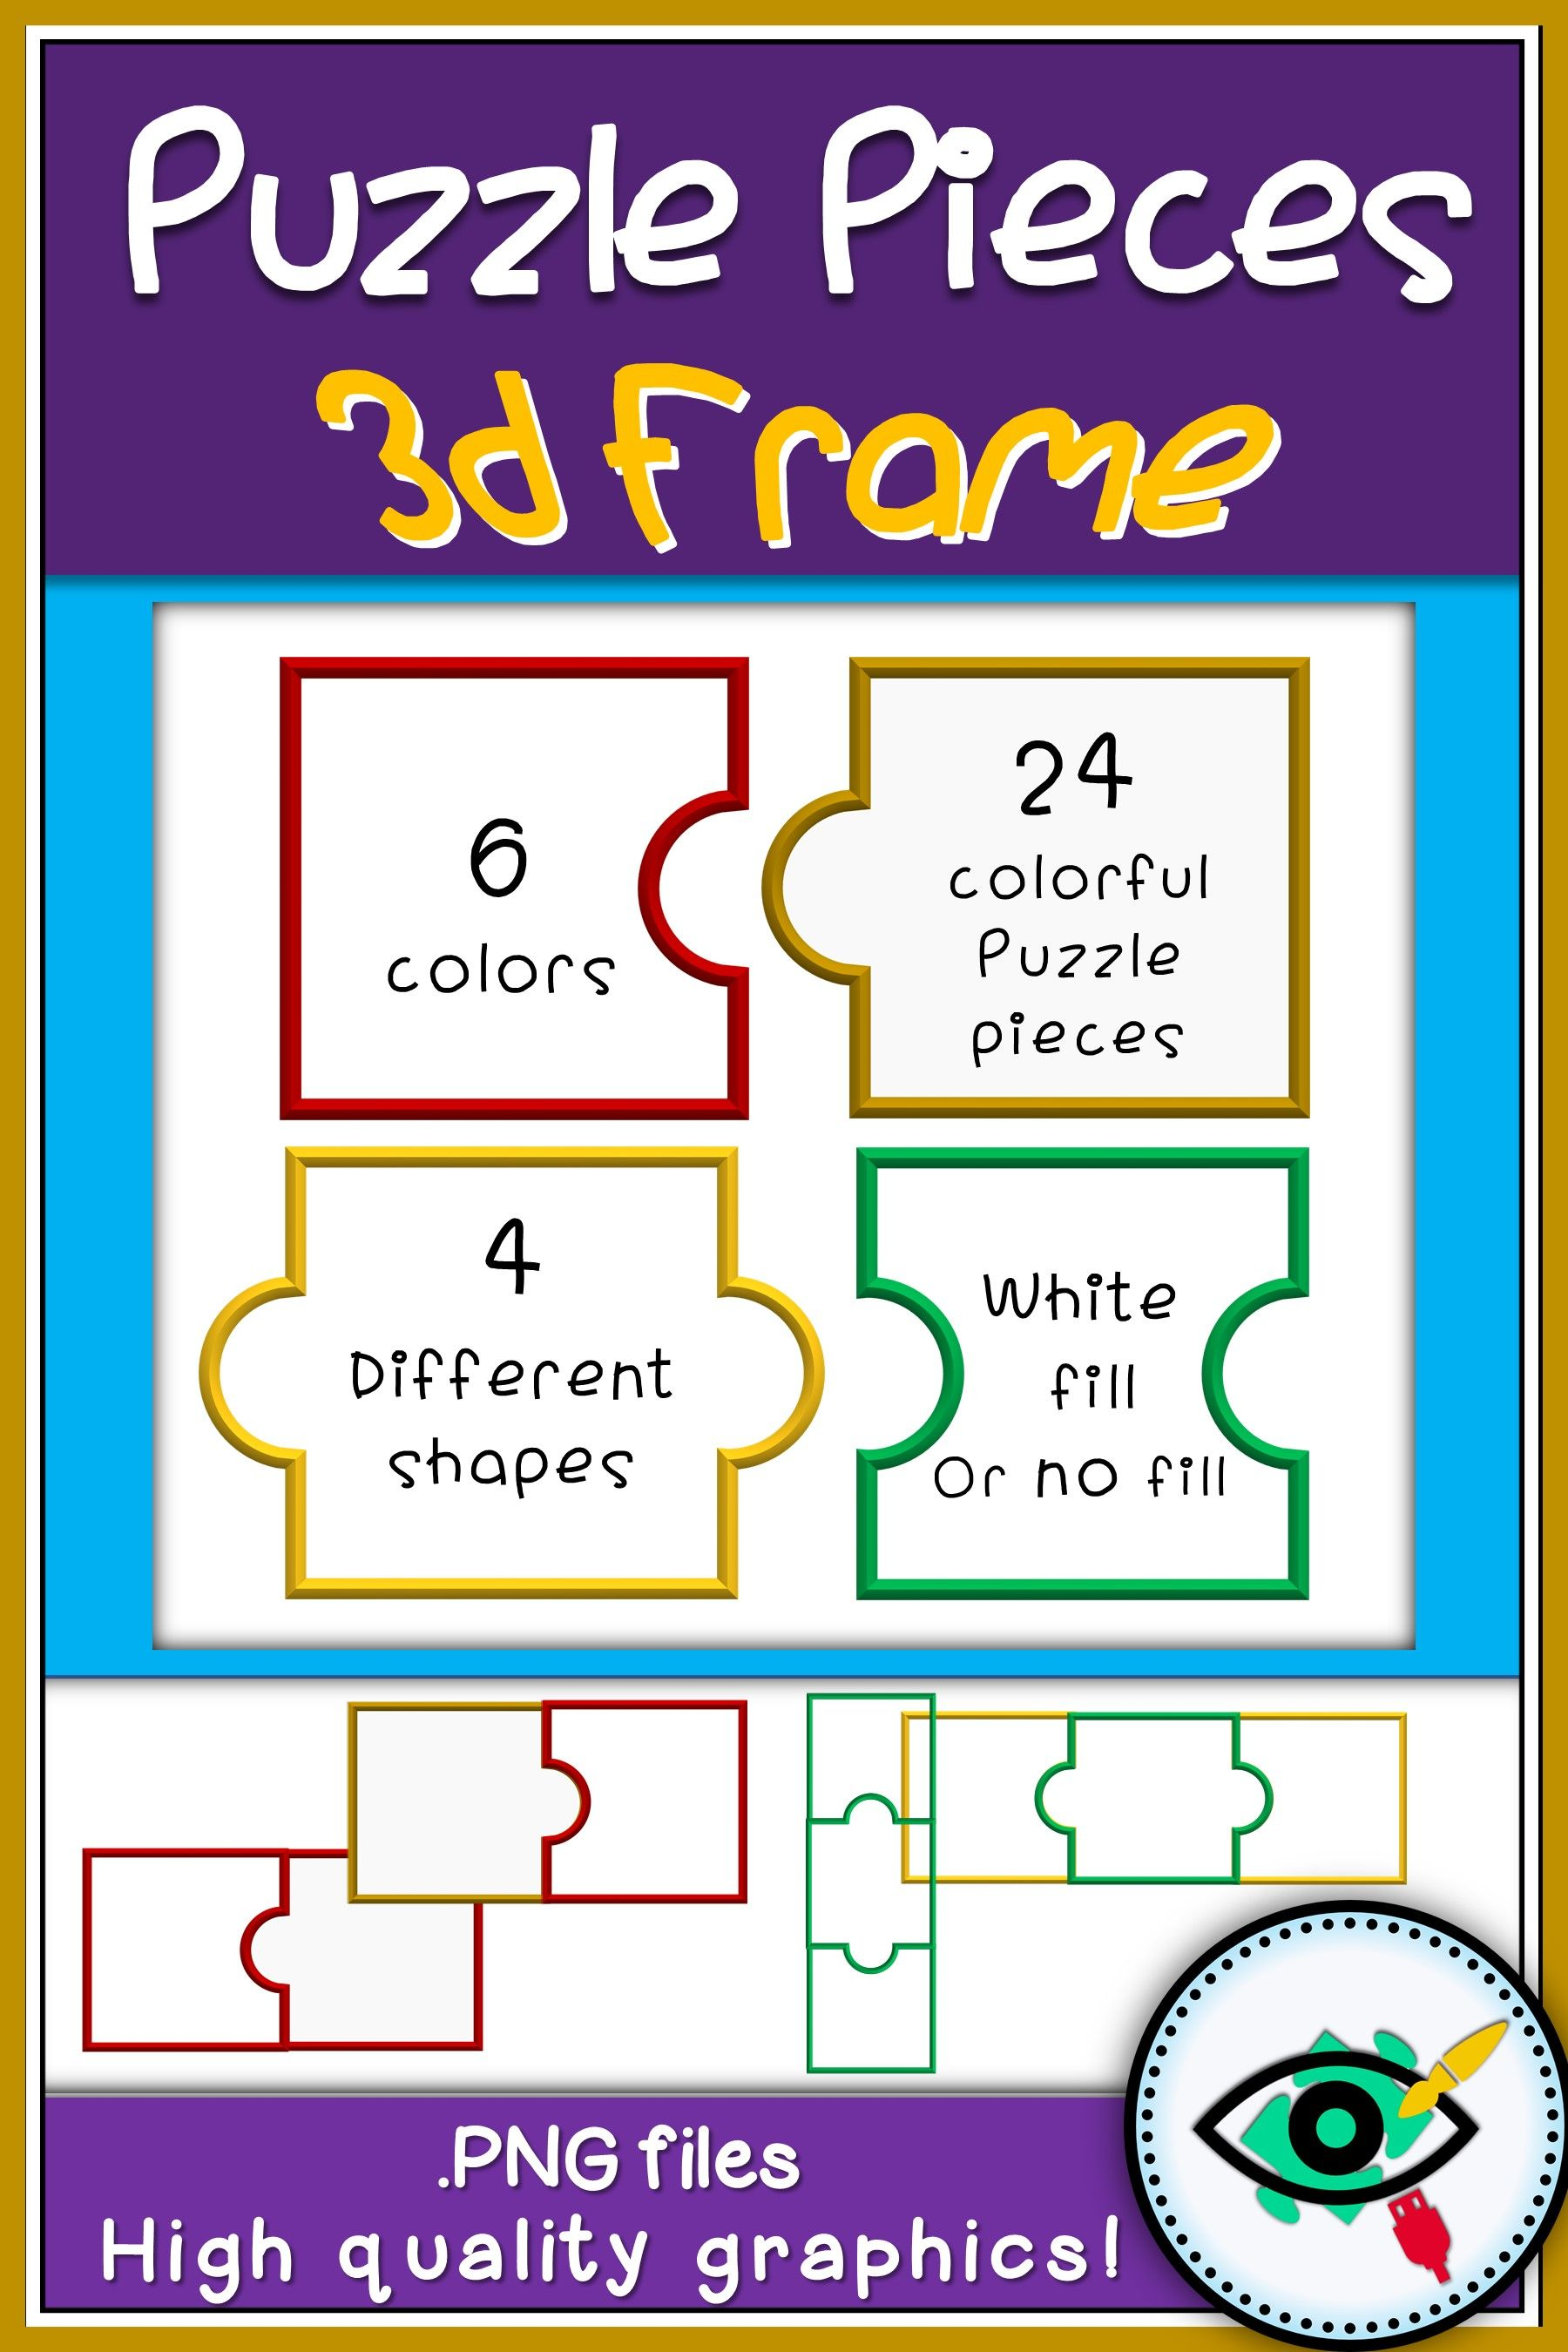 Puzzle pieces 3d frames clipart | Best of Planerium | Pinterest | 3d ...